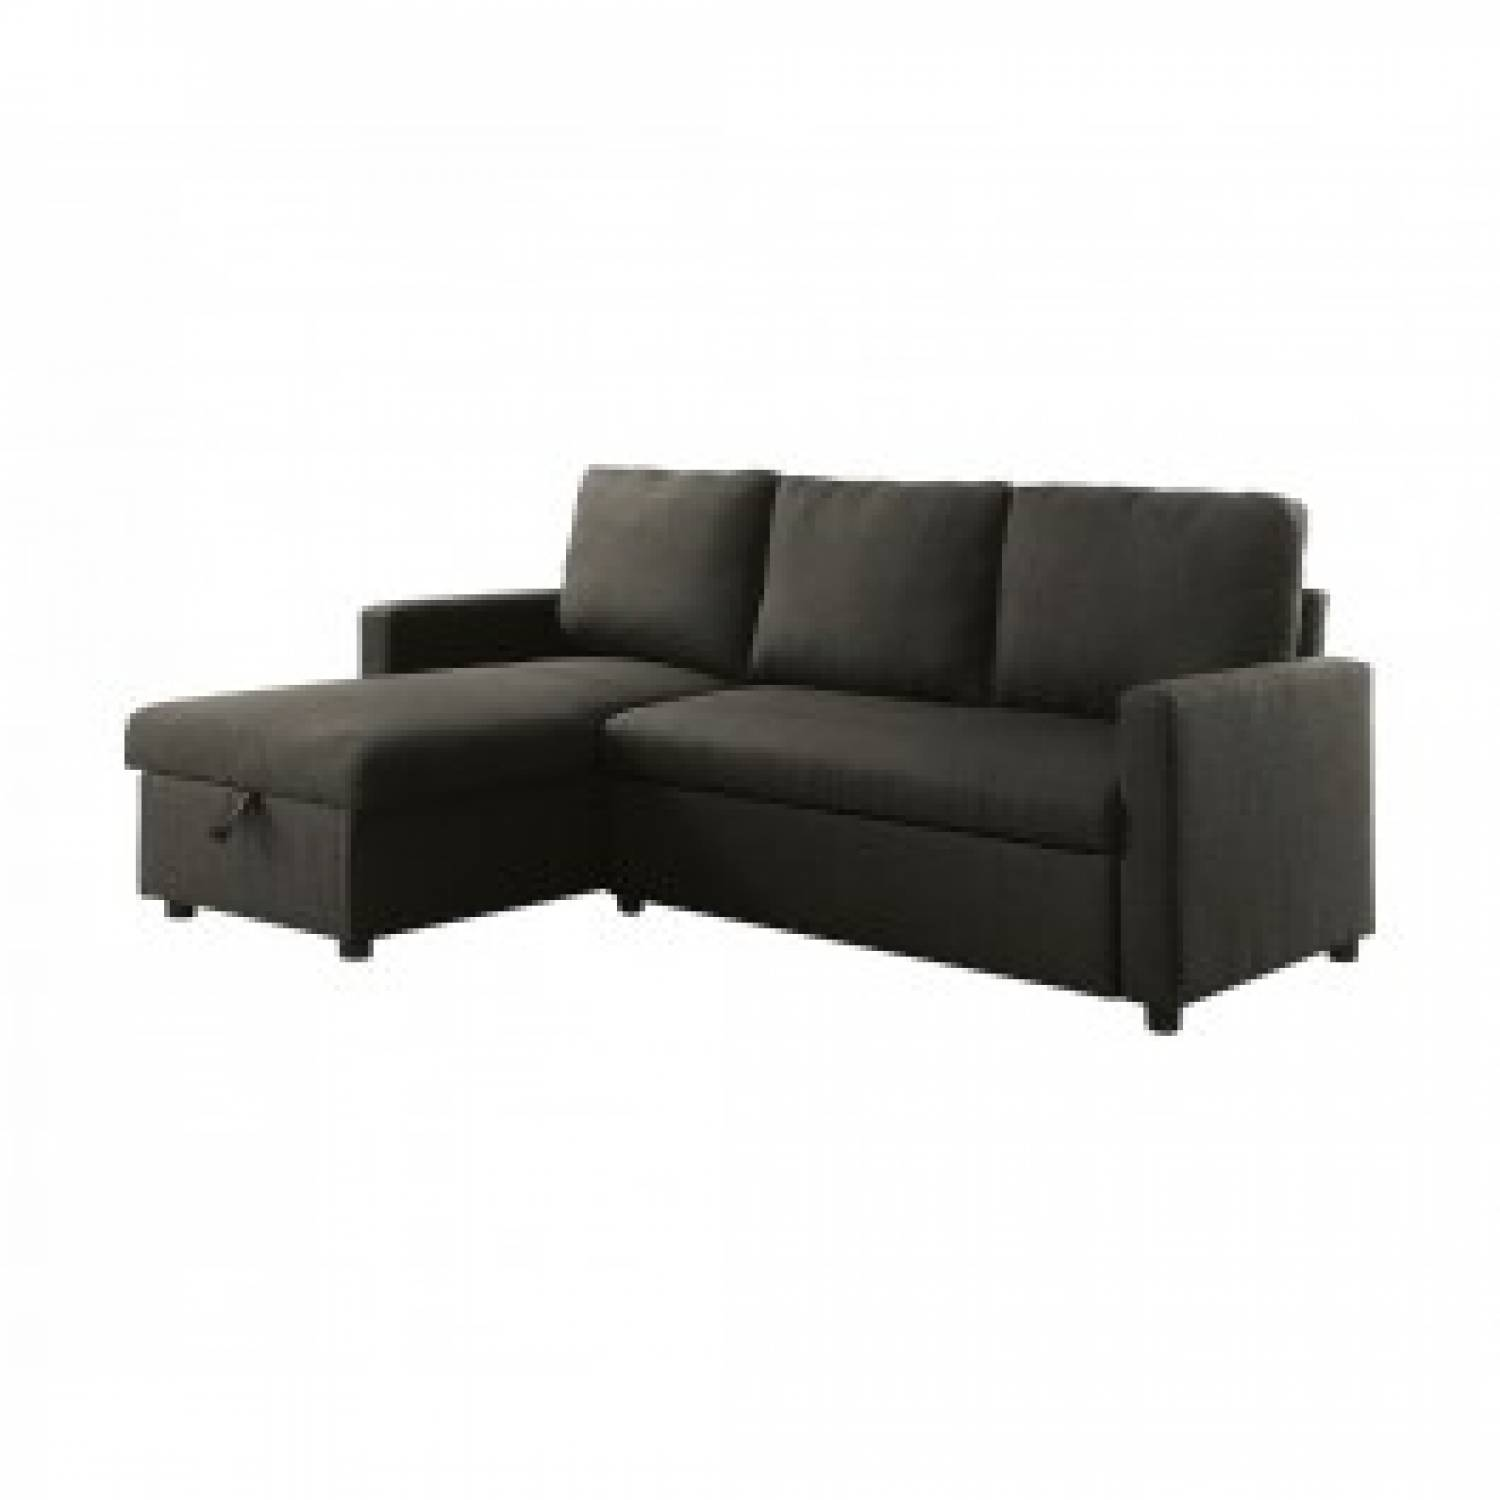 Wondrous Hilton Sectional Sofa 52300 Caraccident5 Cool Chair Designs And Ideas Caraccident5Info